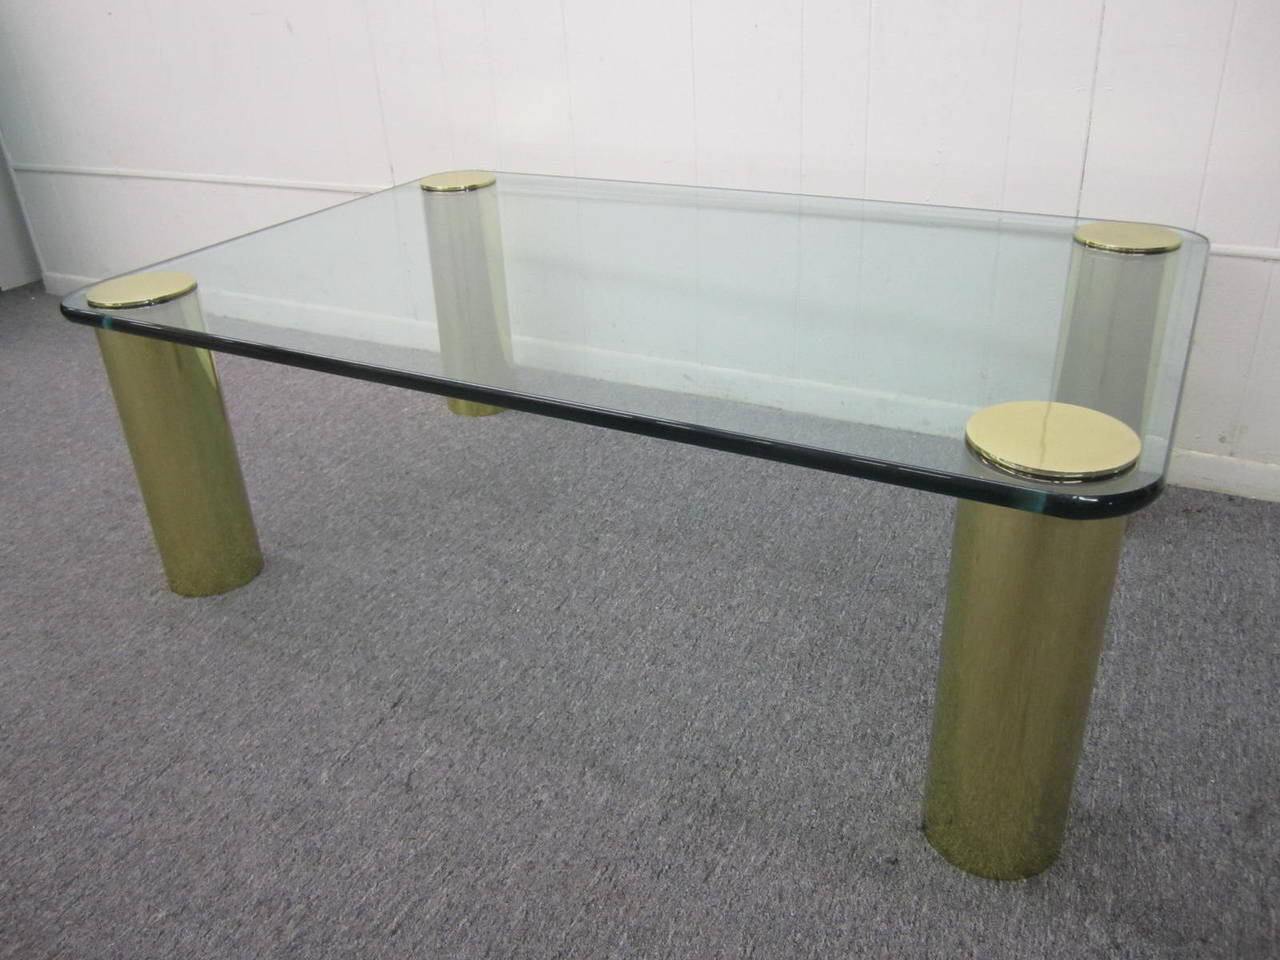 Fabulous Pace Collection chunky brass cylinder leg table. The legs have been freshly cleaned and polished and look mint.